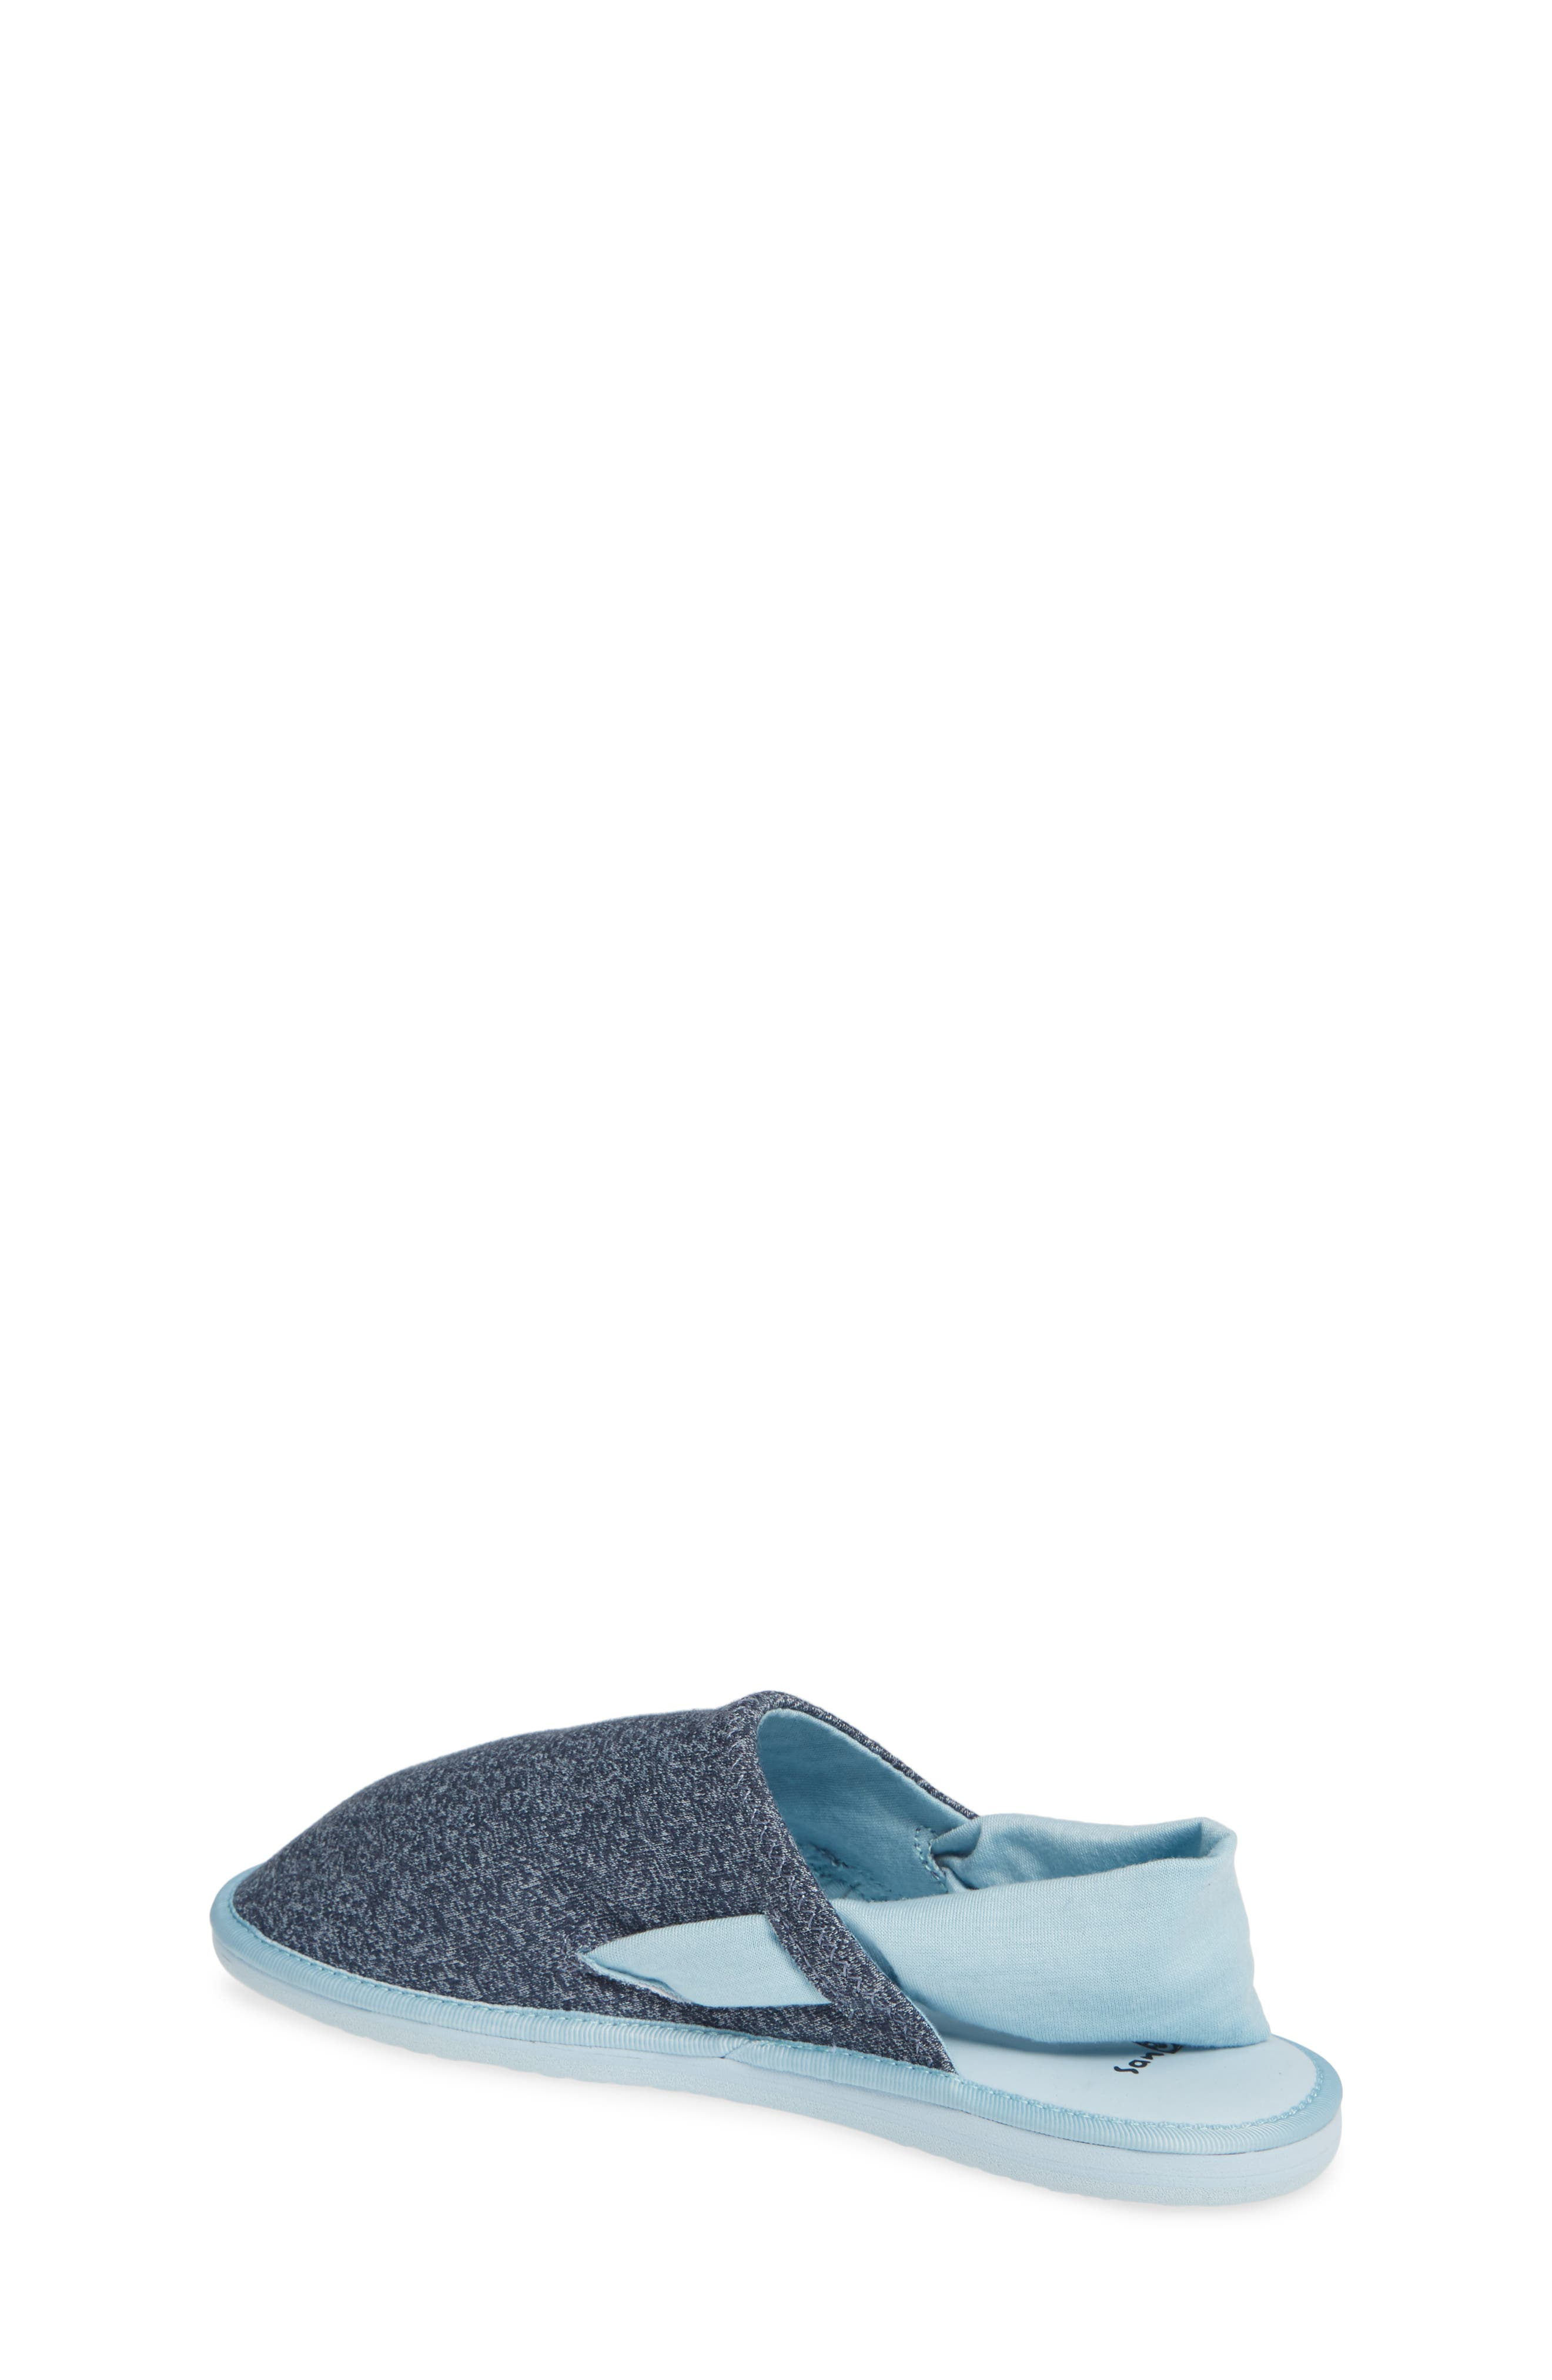 Lil Yoga Sling Cruz Slip-On,                             Alternate thumbnail 2, color,                             HEATHER OUTERSPACE